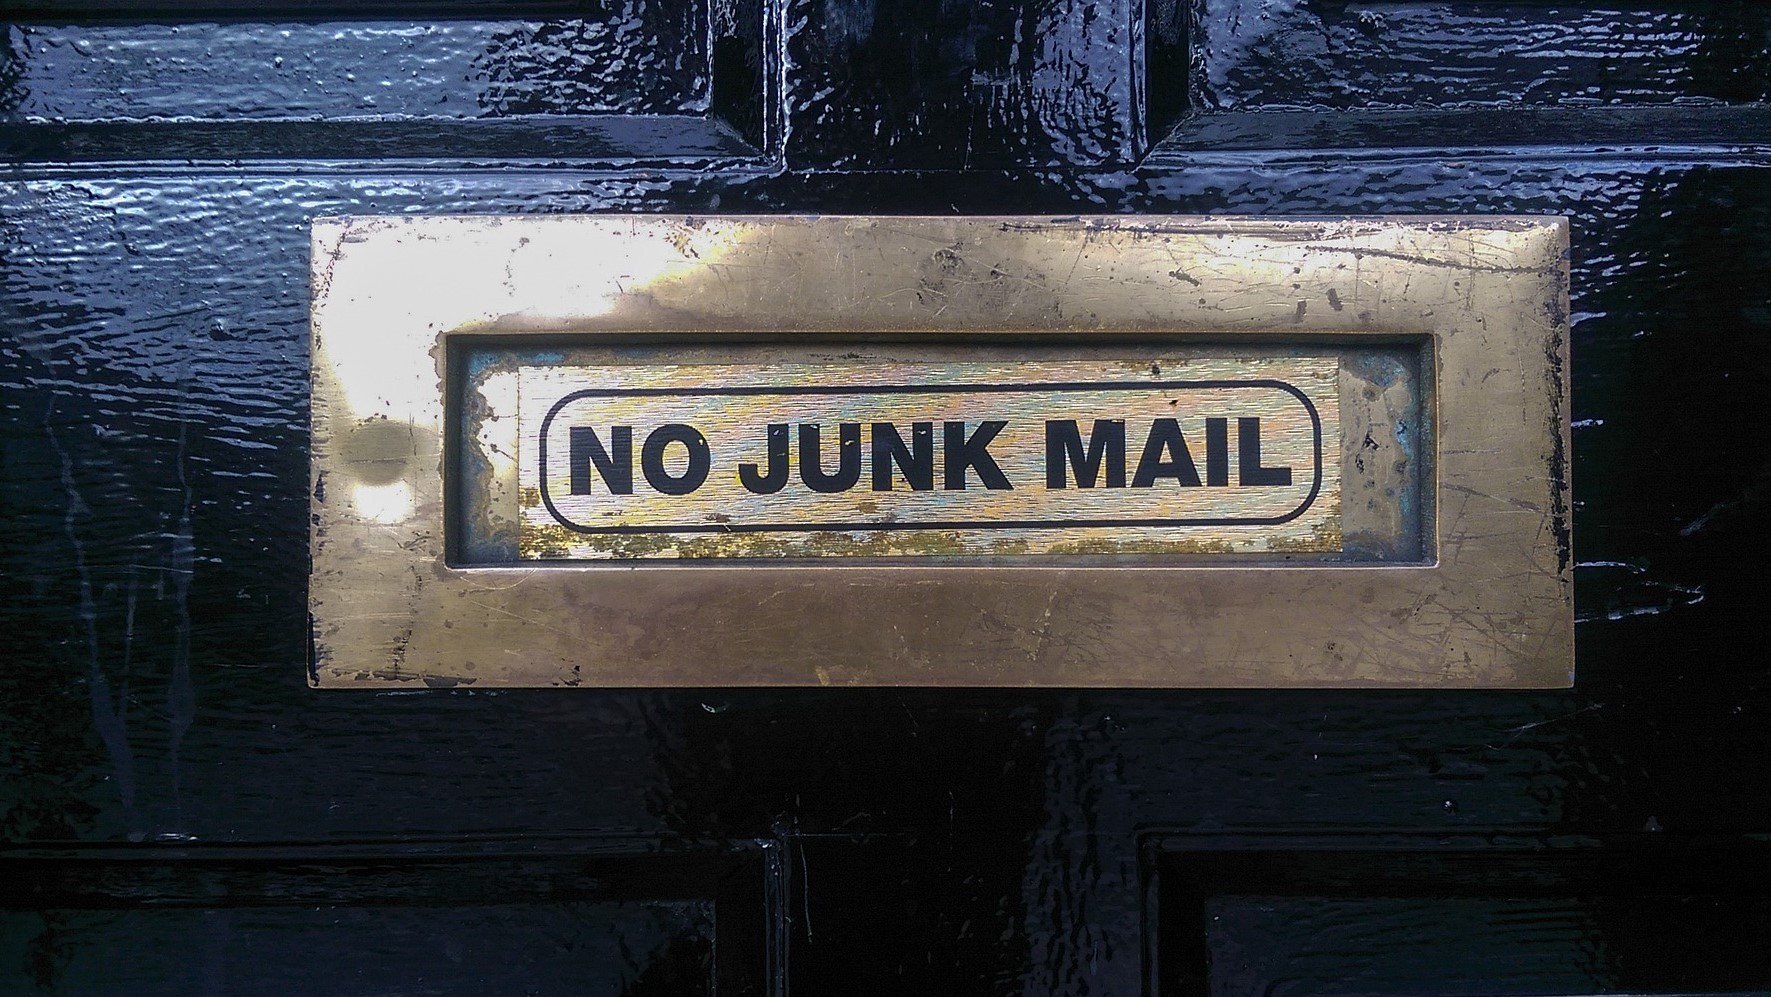 No junkmil in my mailbox